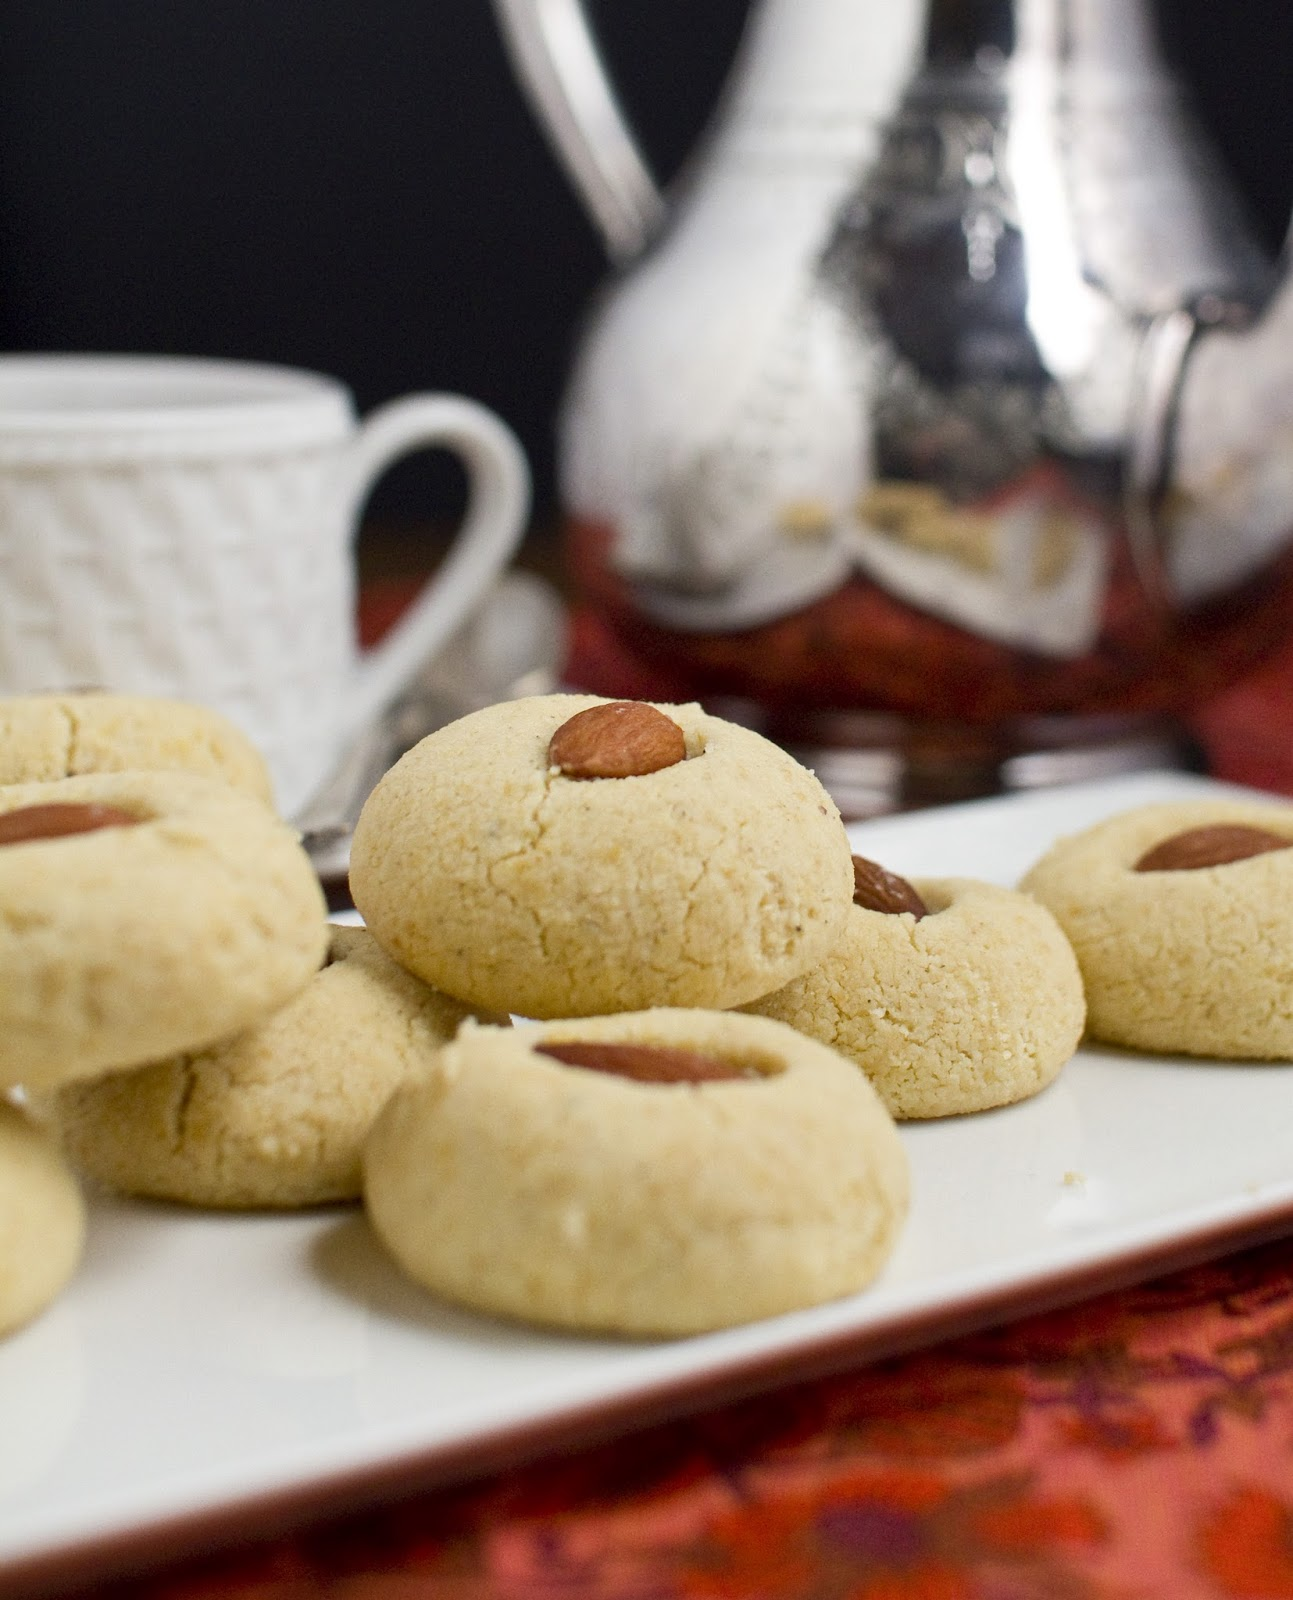 The Colors Of Indian Cooking: Almond Cardamom Cookies 2 Ways, Gluten ...